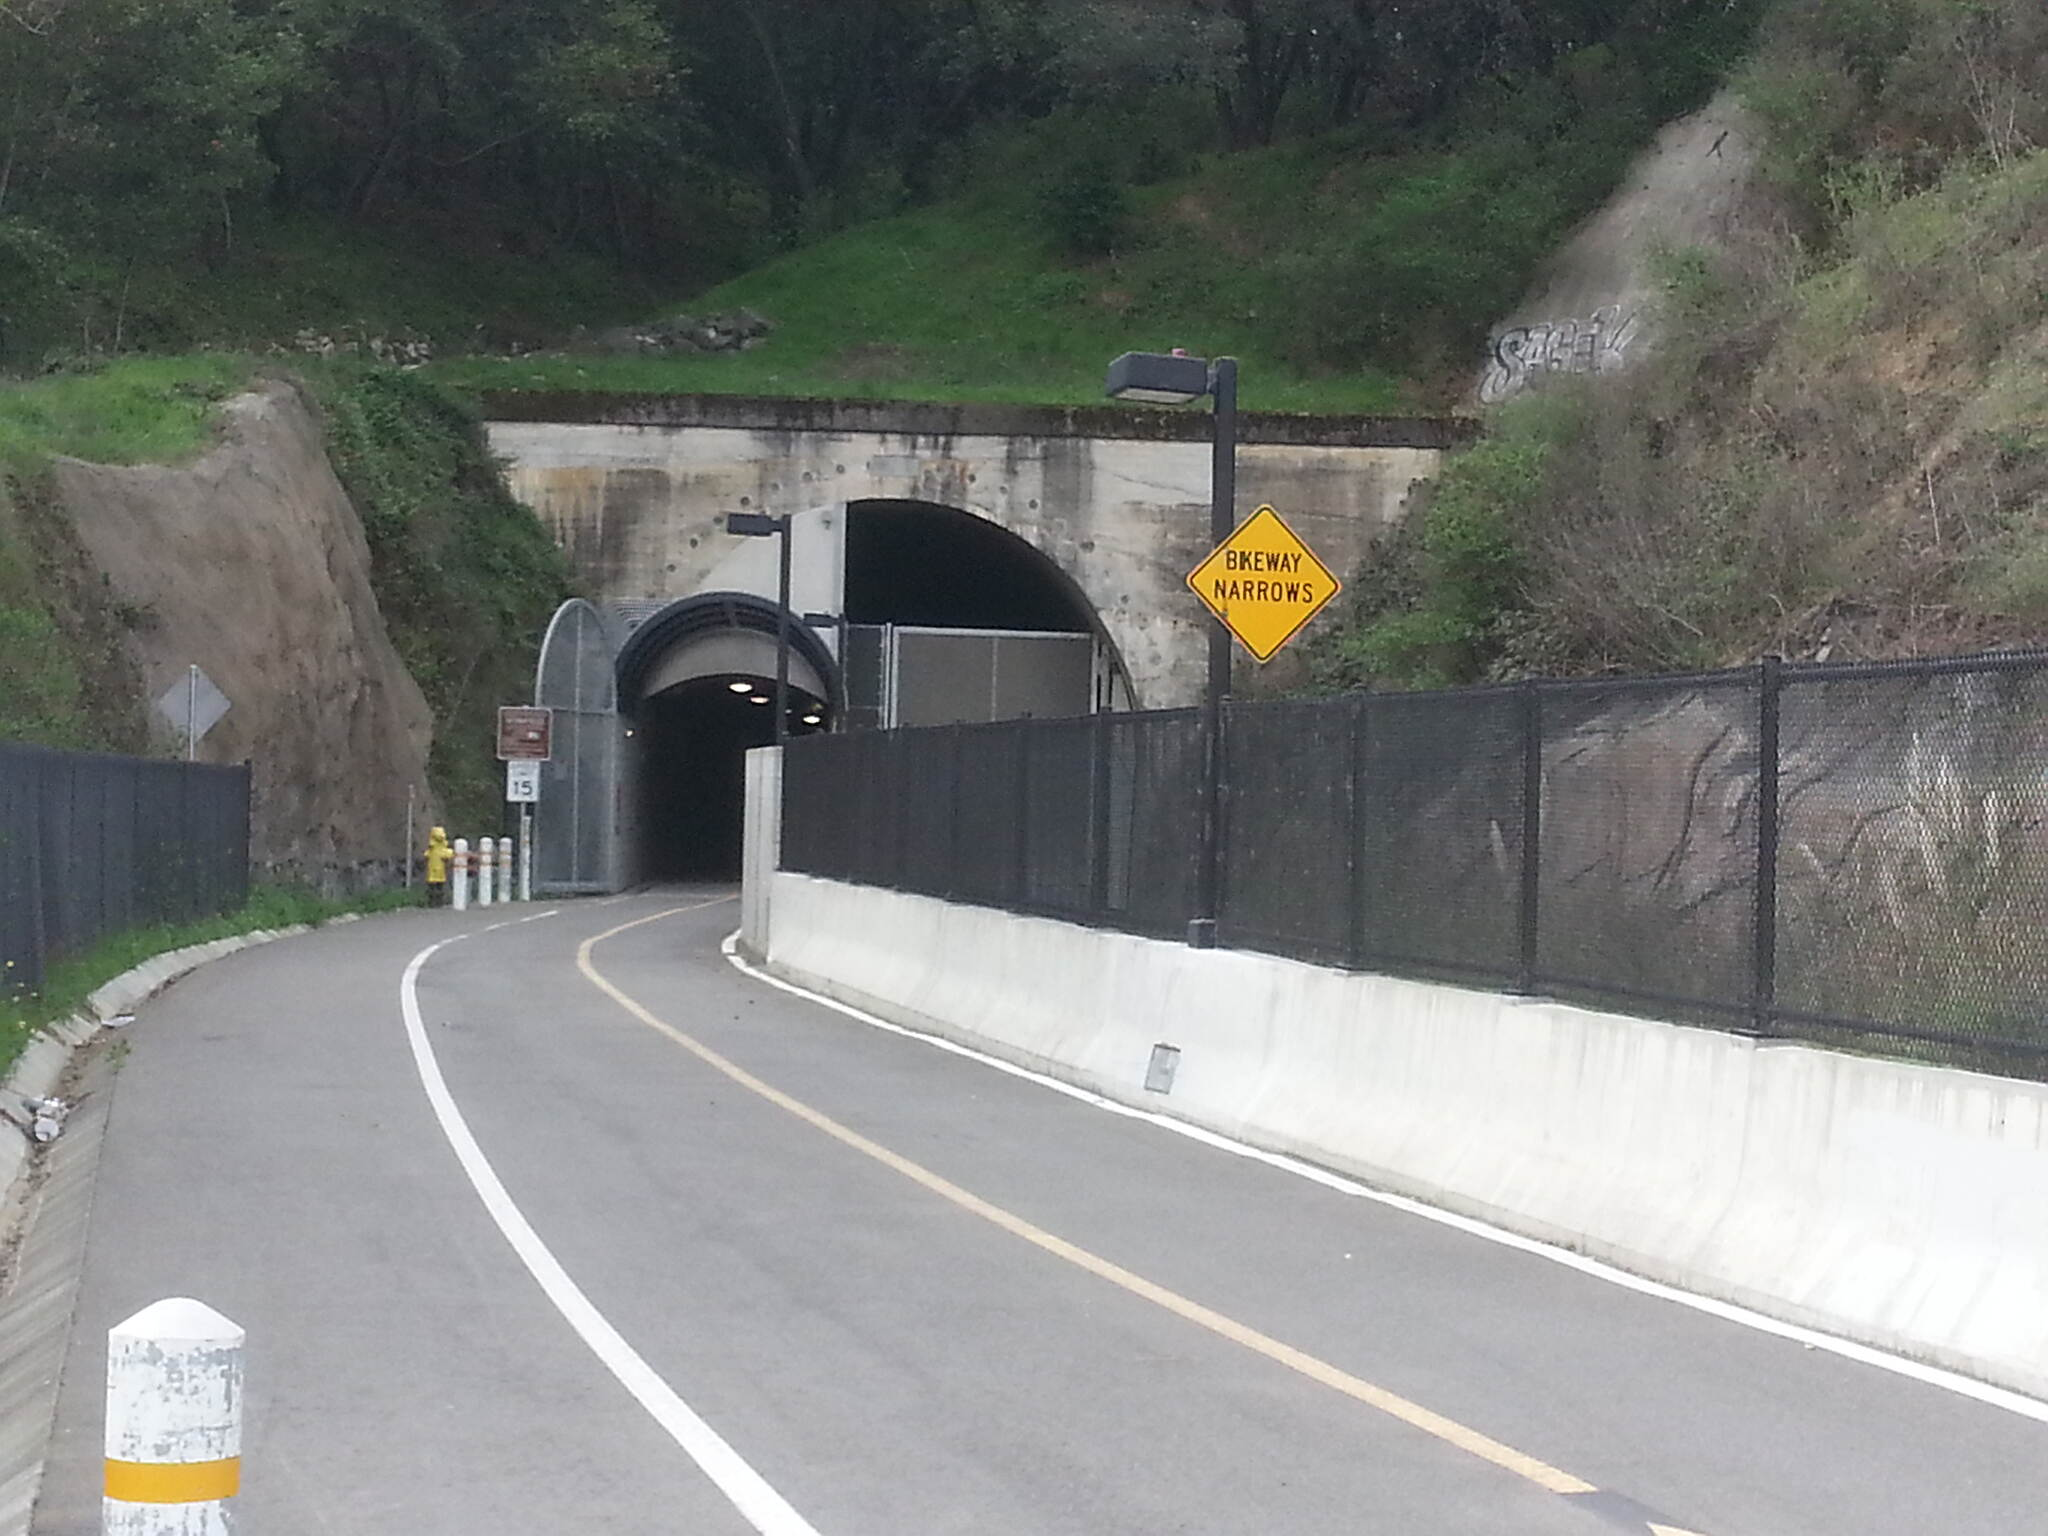 Cal Park Hill Tunnel North entrance to tunnel Tunnel is lit and has fans moving the air inside.